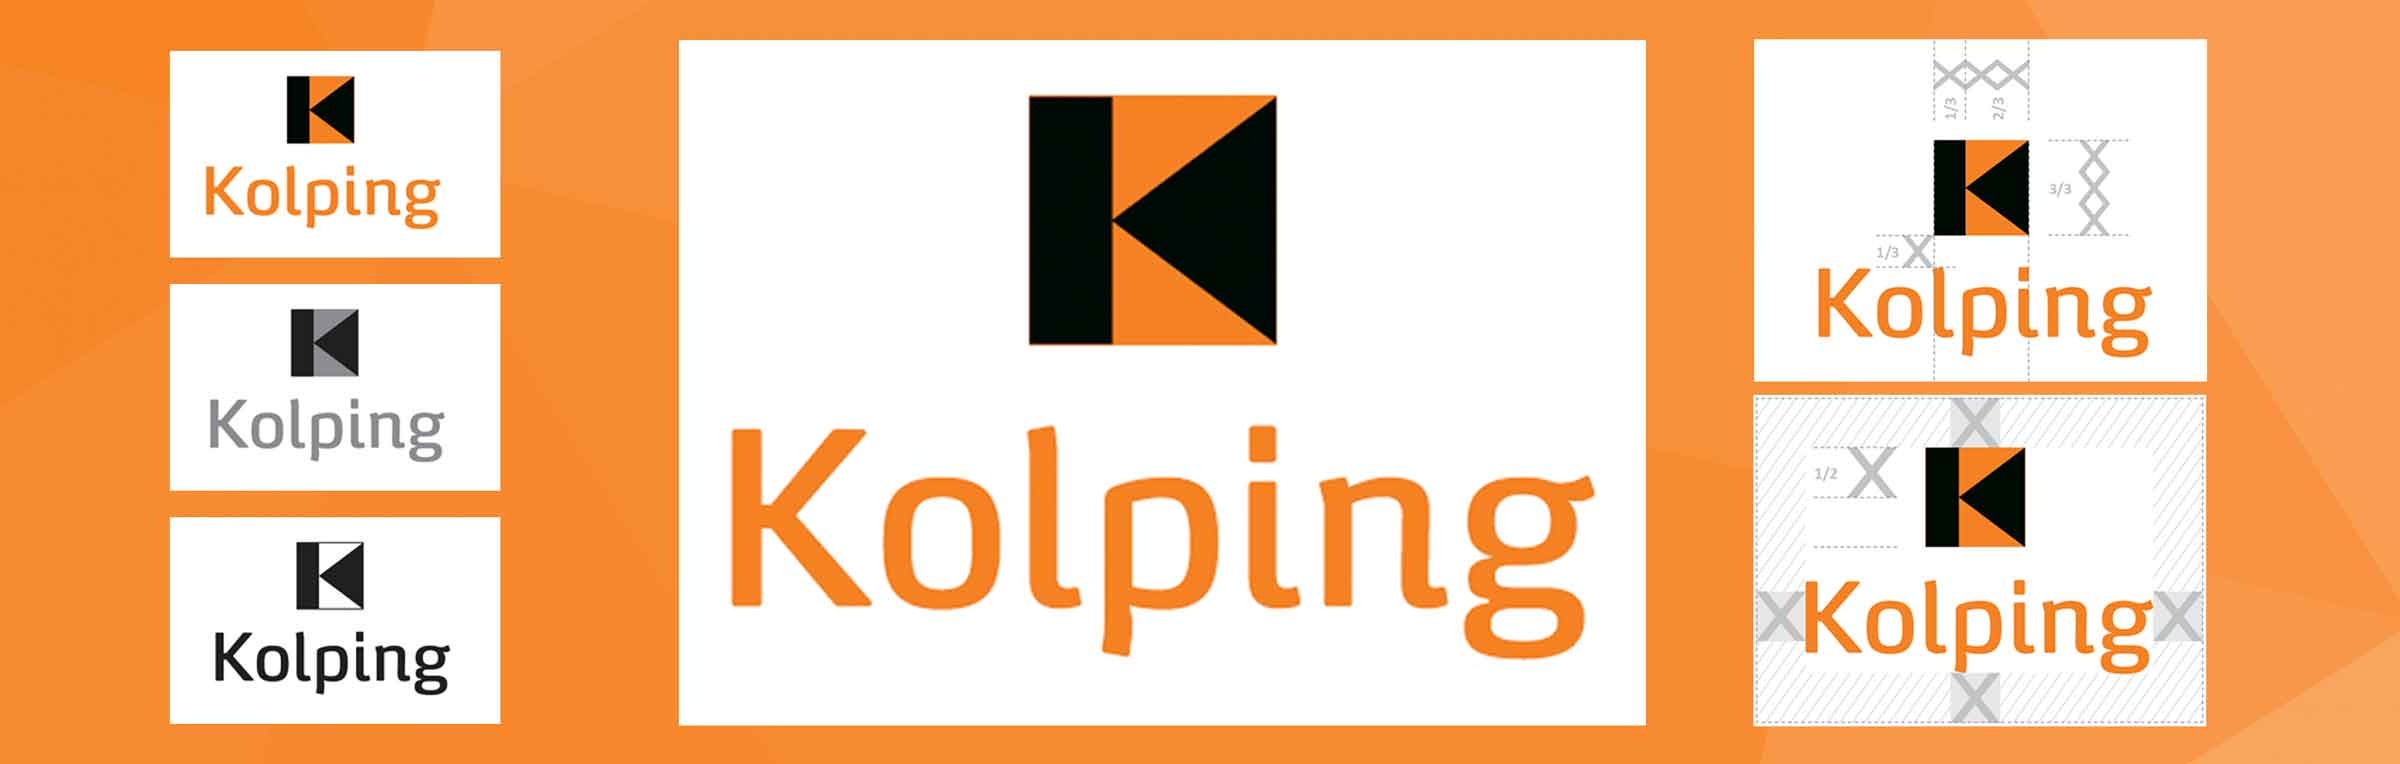 Corporate Design Kolping von Design Agentur Köln